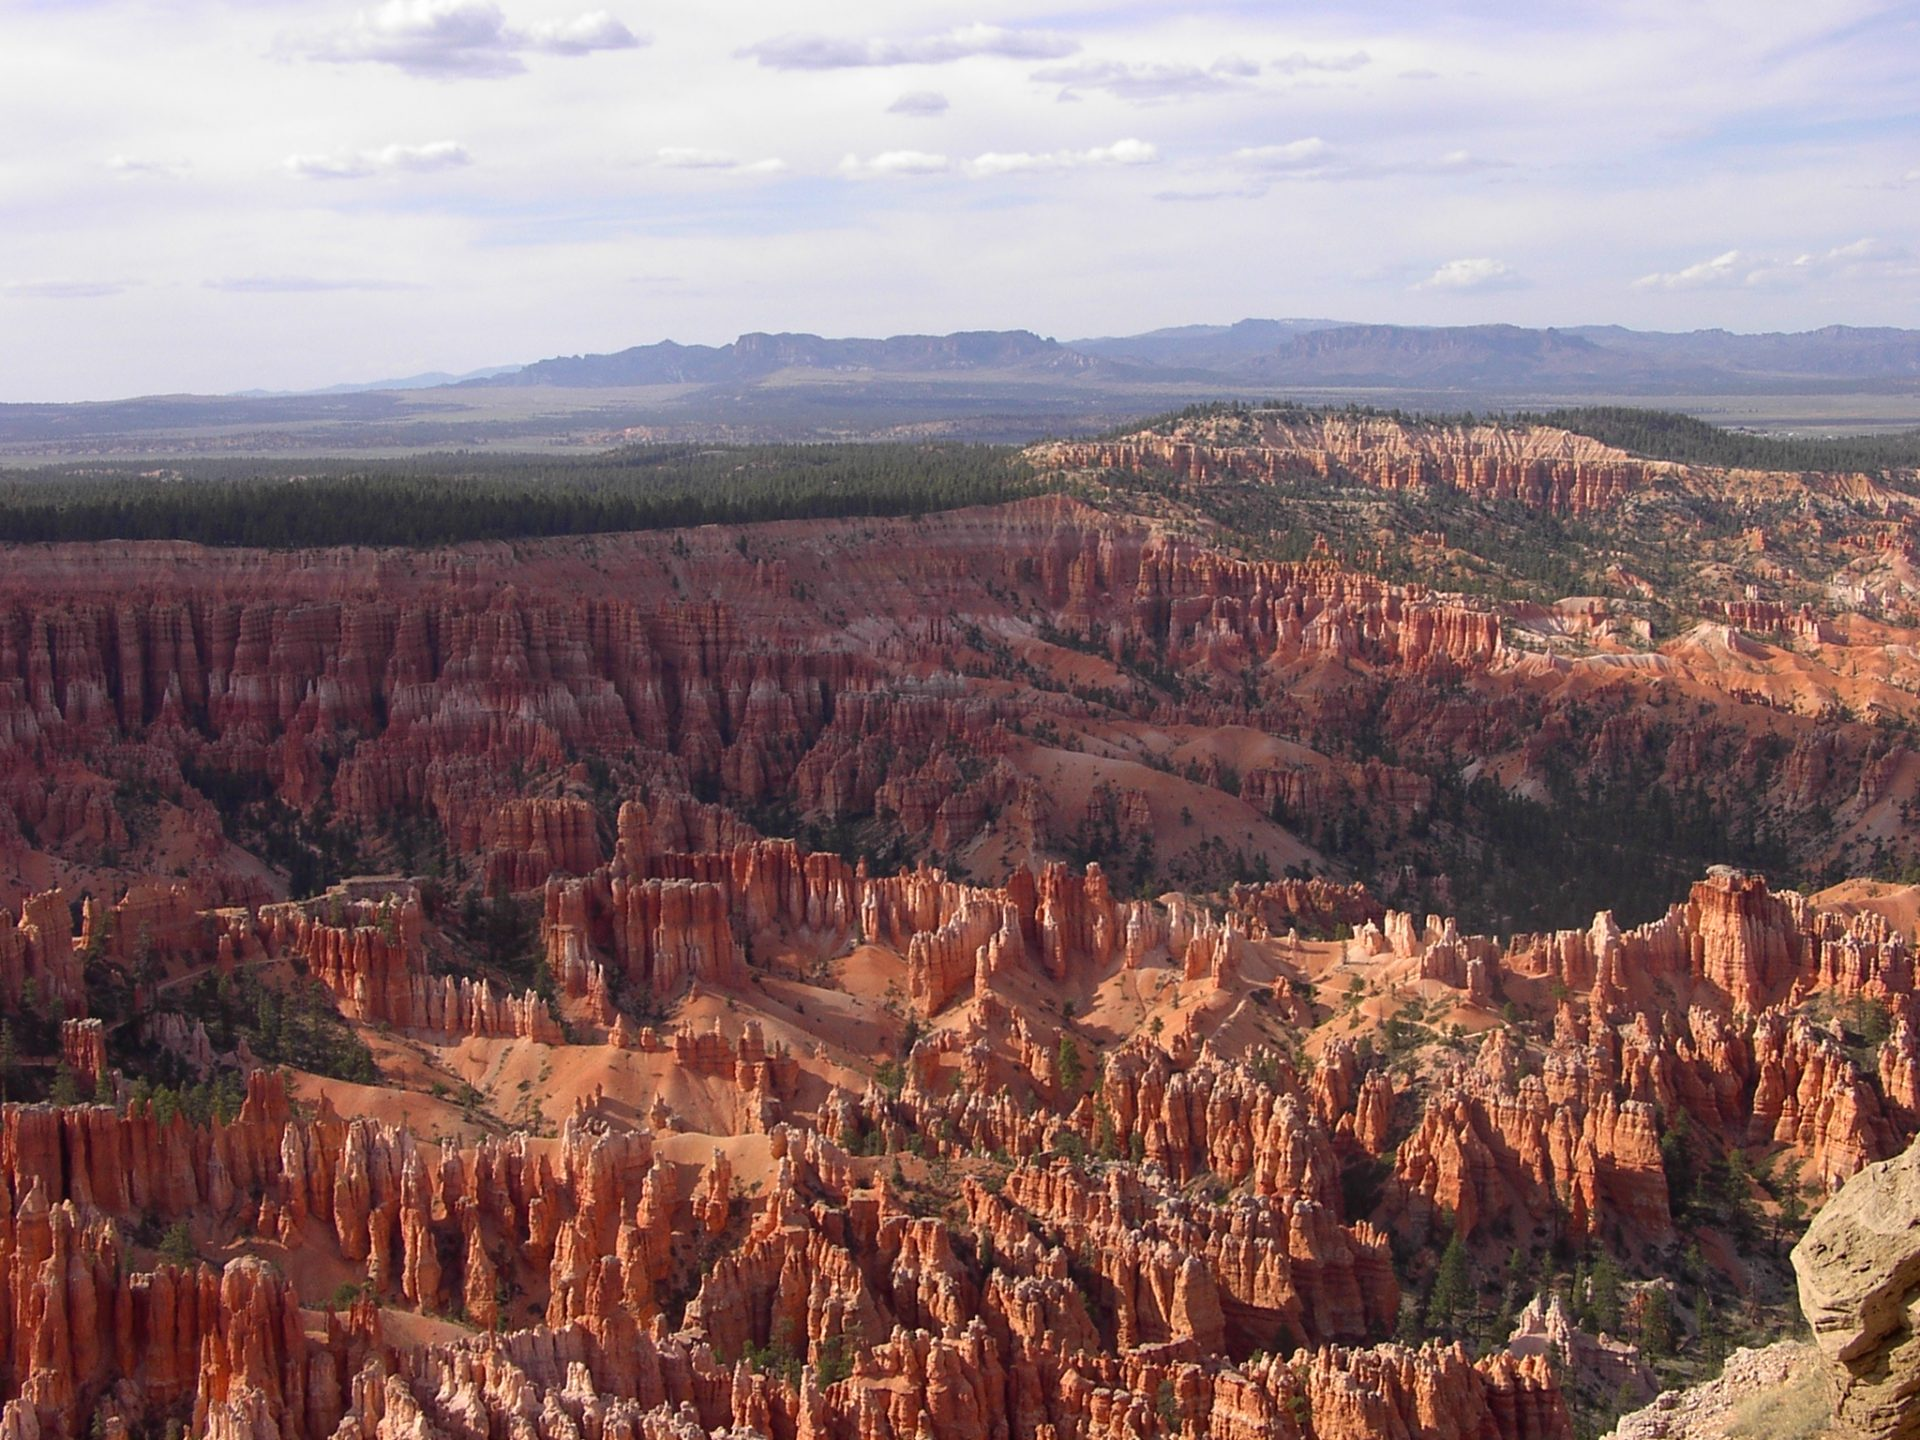 A field of towering red rocks in Bryce Canyon National Park, Utah - things to see in the American Southwest